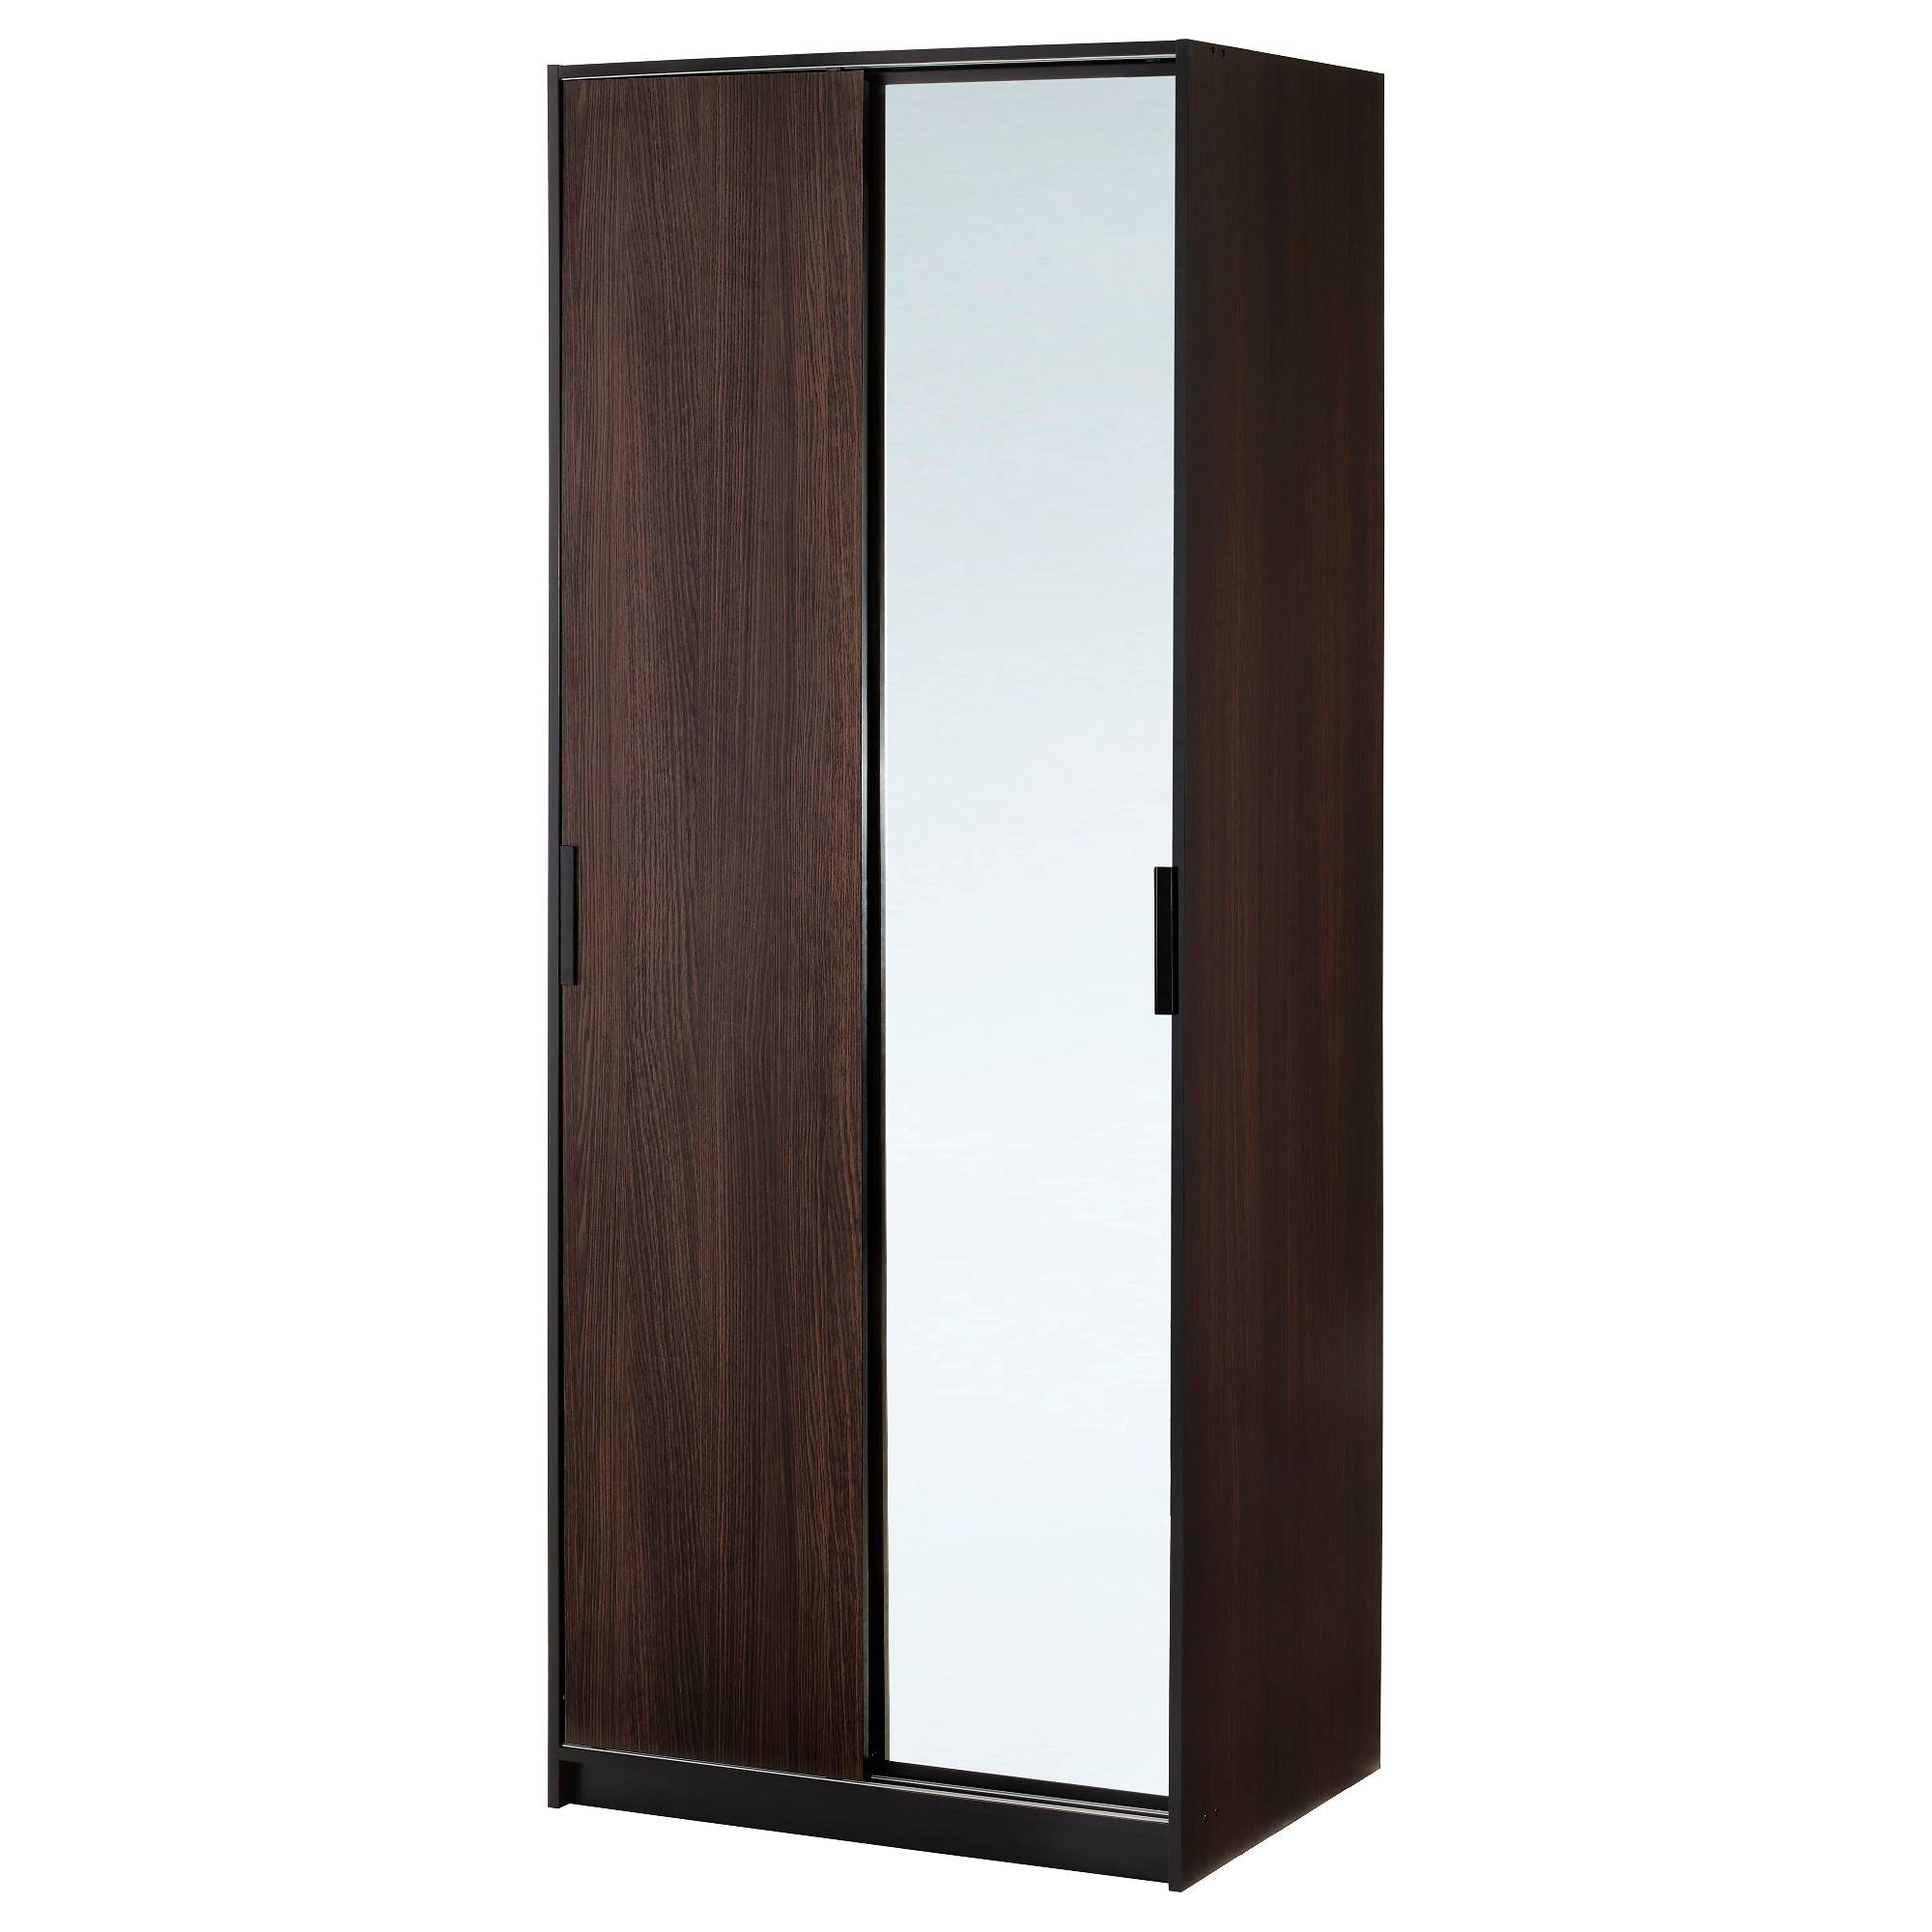 Wardrobes, Armoires & Closets - Ikea with Cheap Wood Wardrobes (Image 15 of 15)